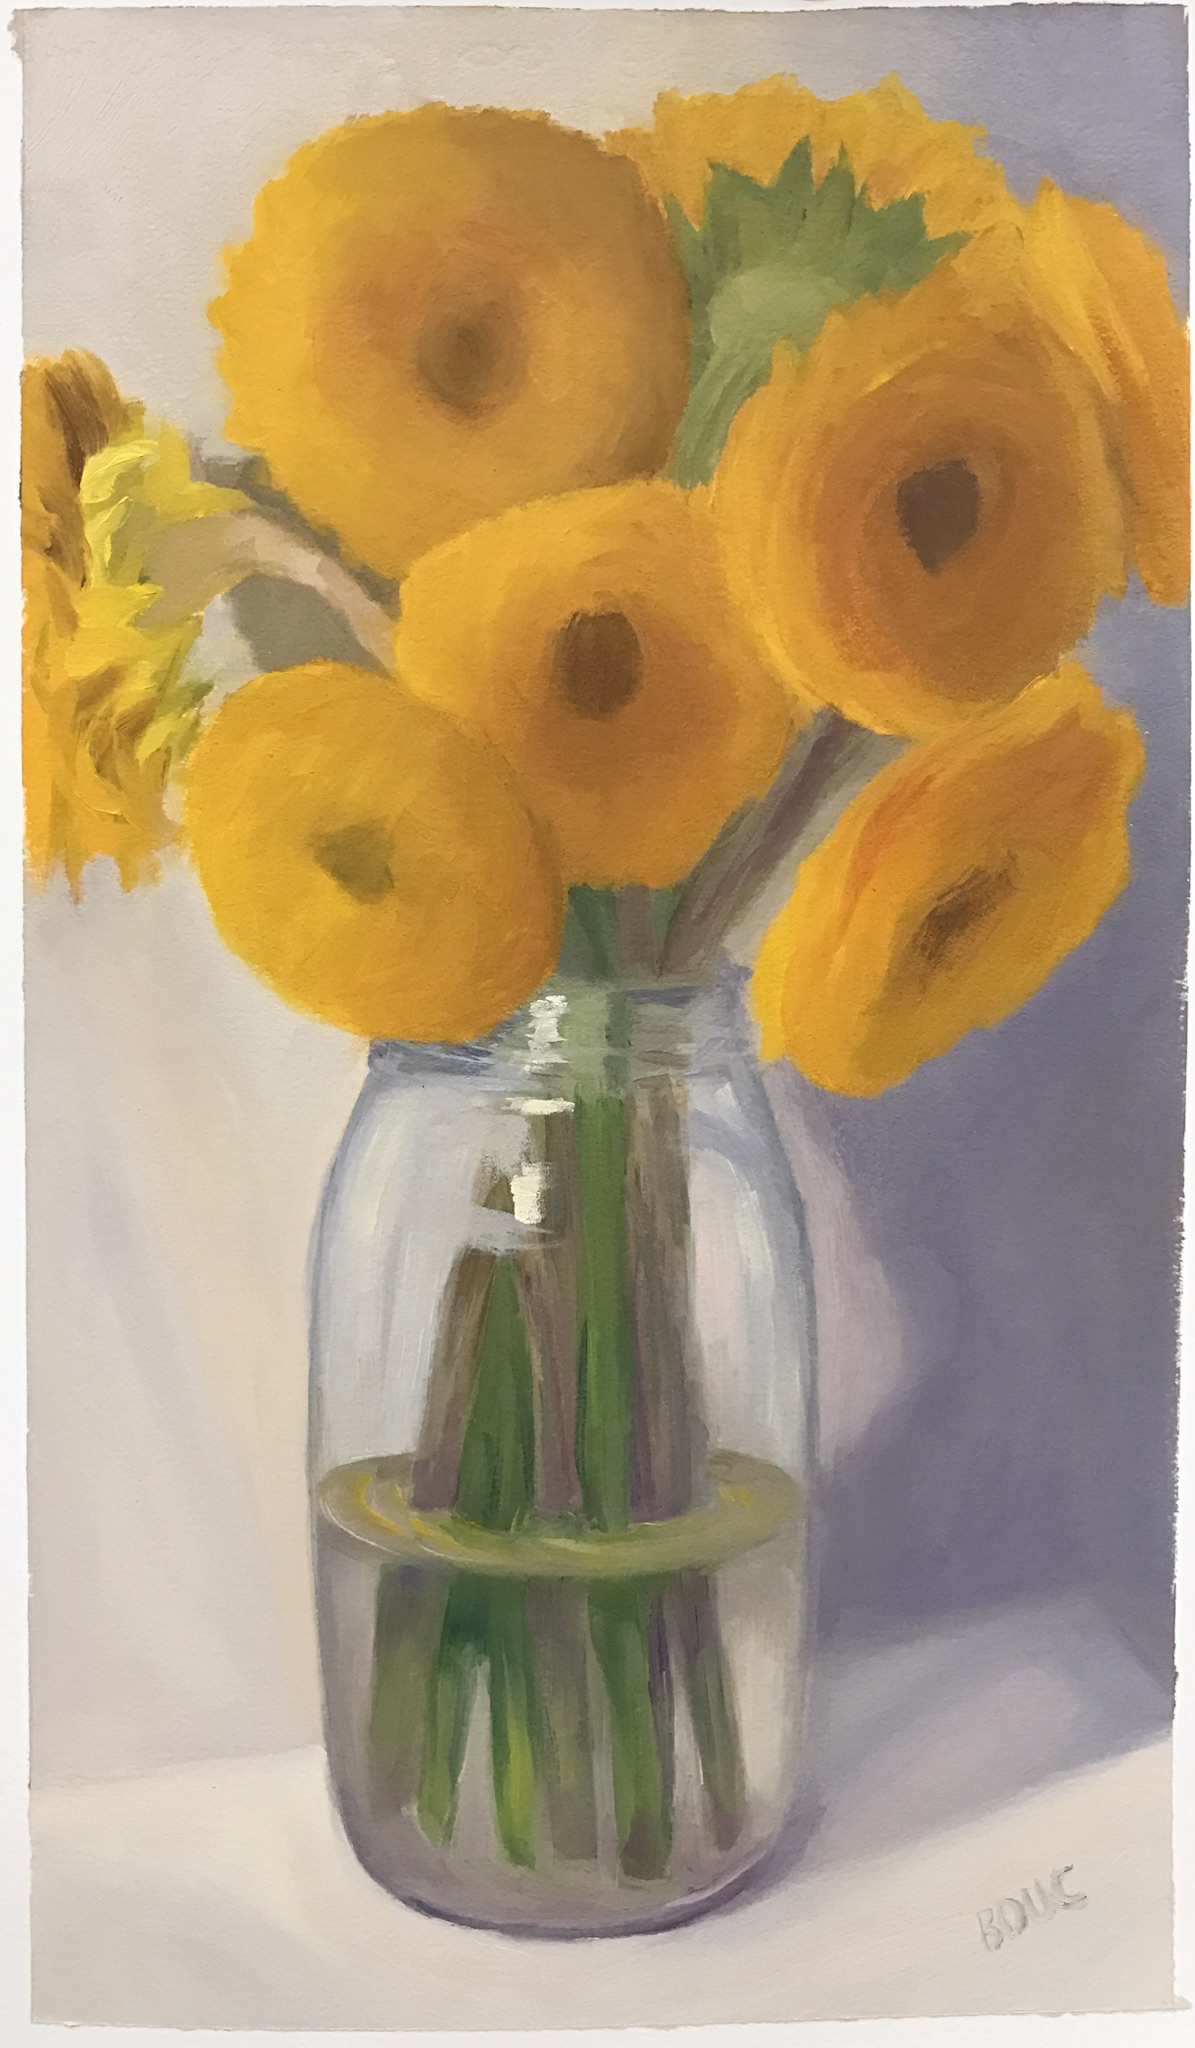 Sunflowers #1-A; oil on Arches Oil Paper, 17